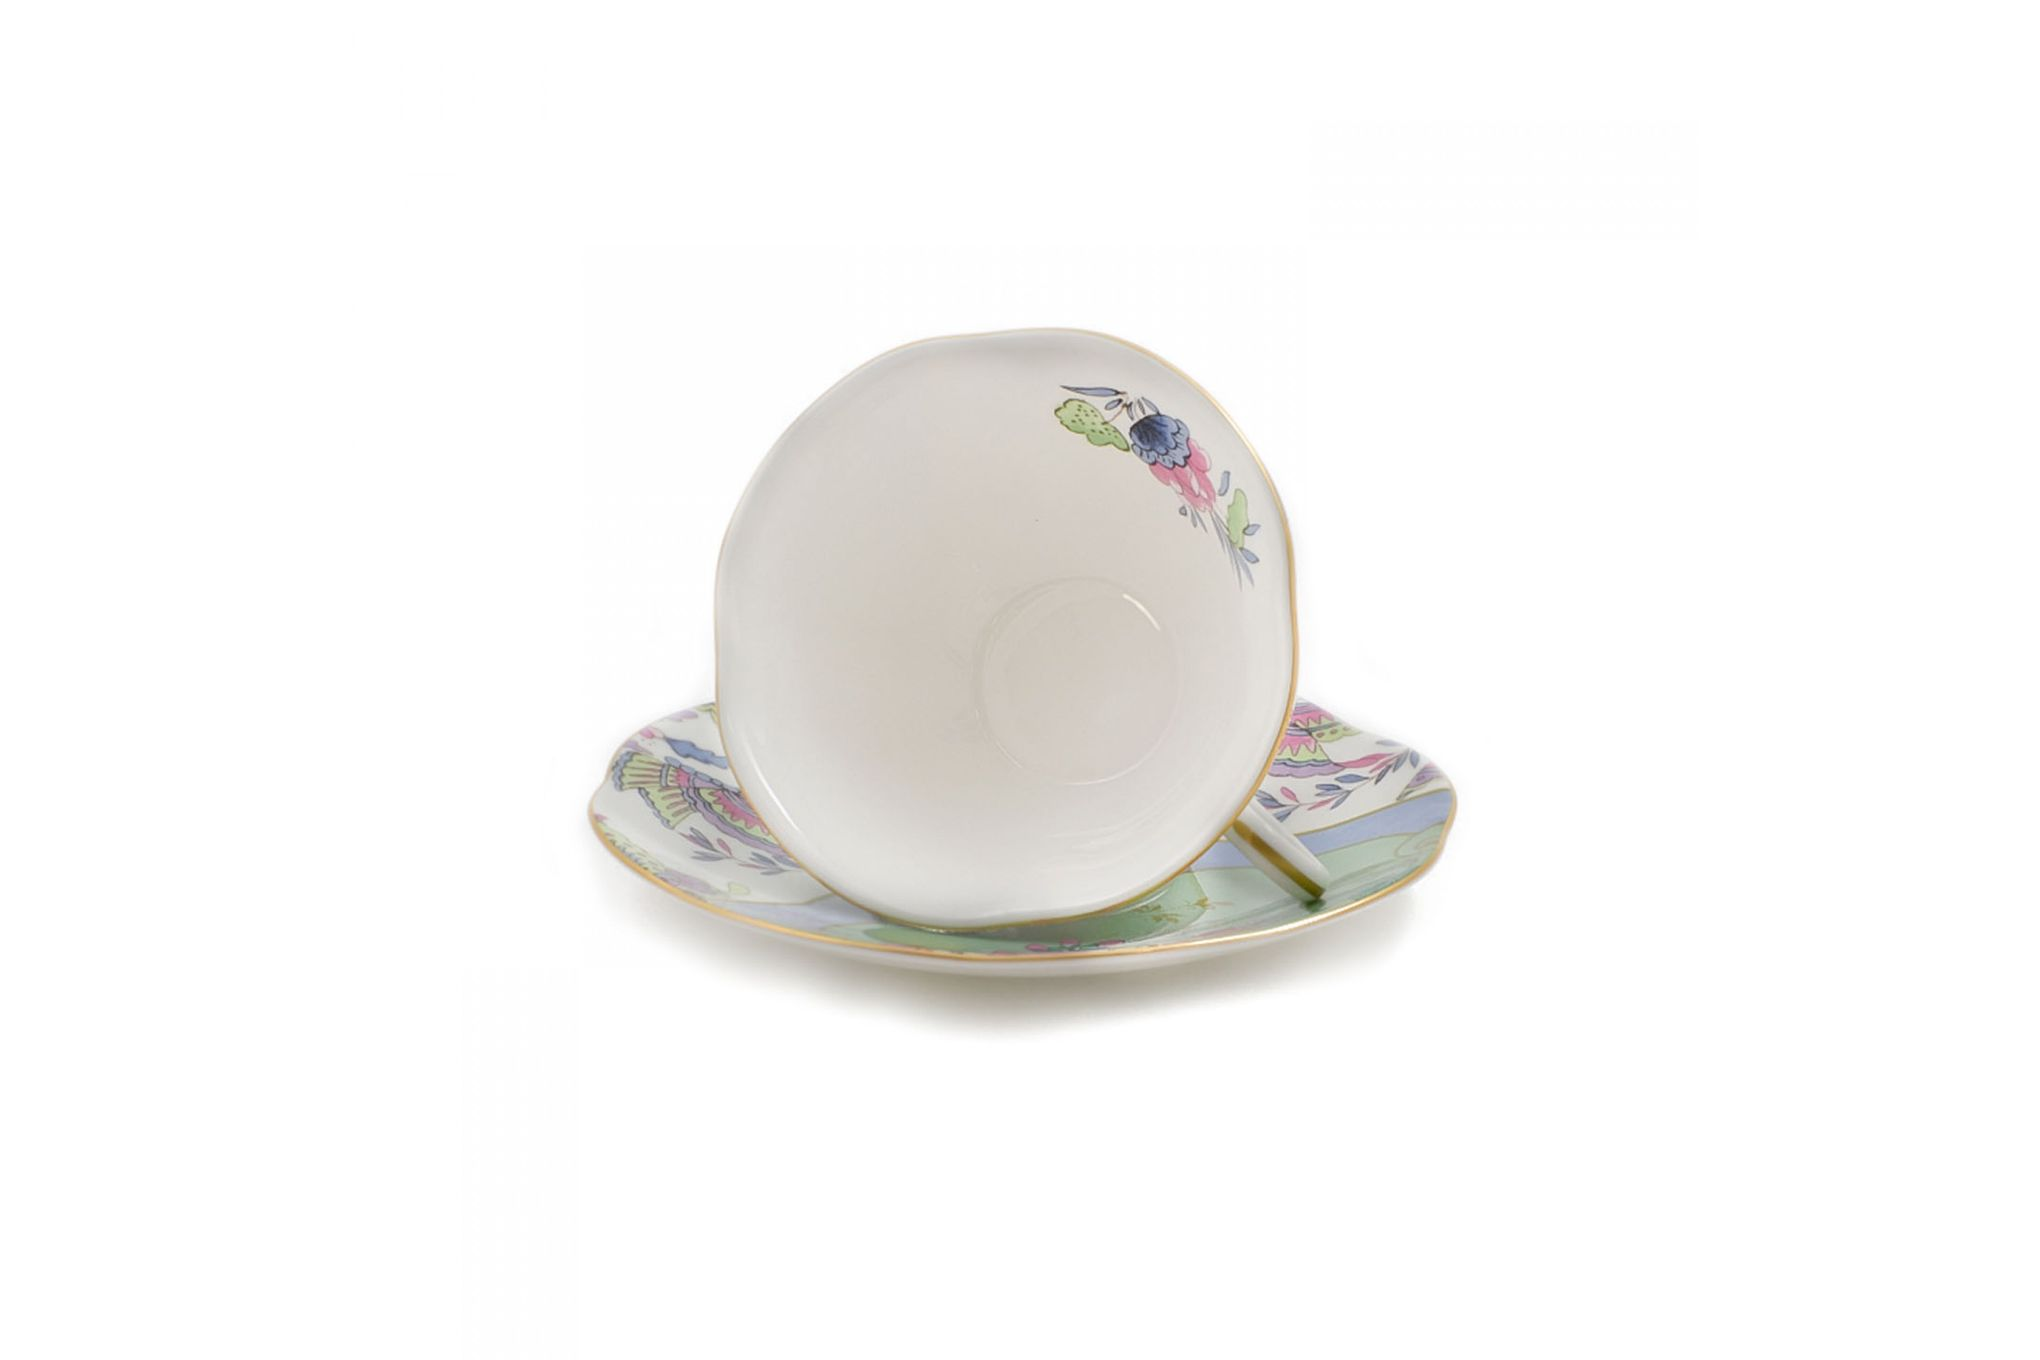 Wedgwood Butterfly Bloom Teacup & Saucer Green thumb 4